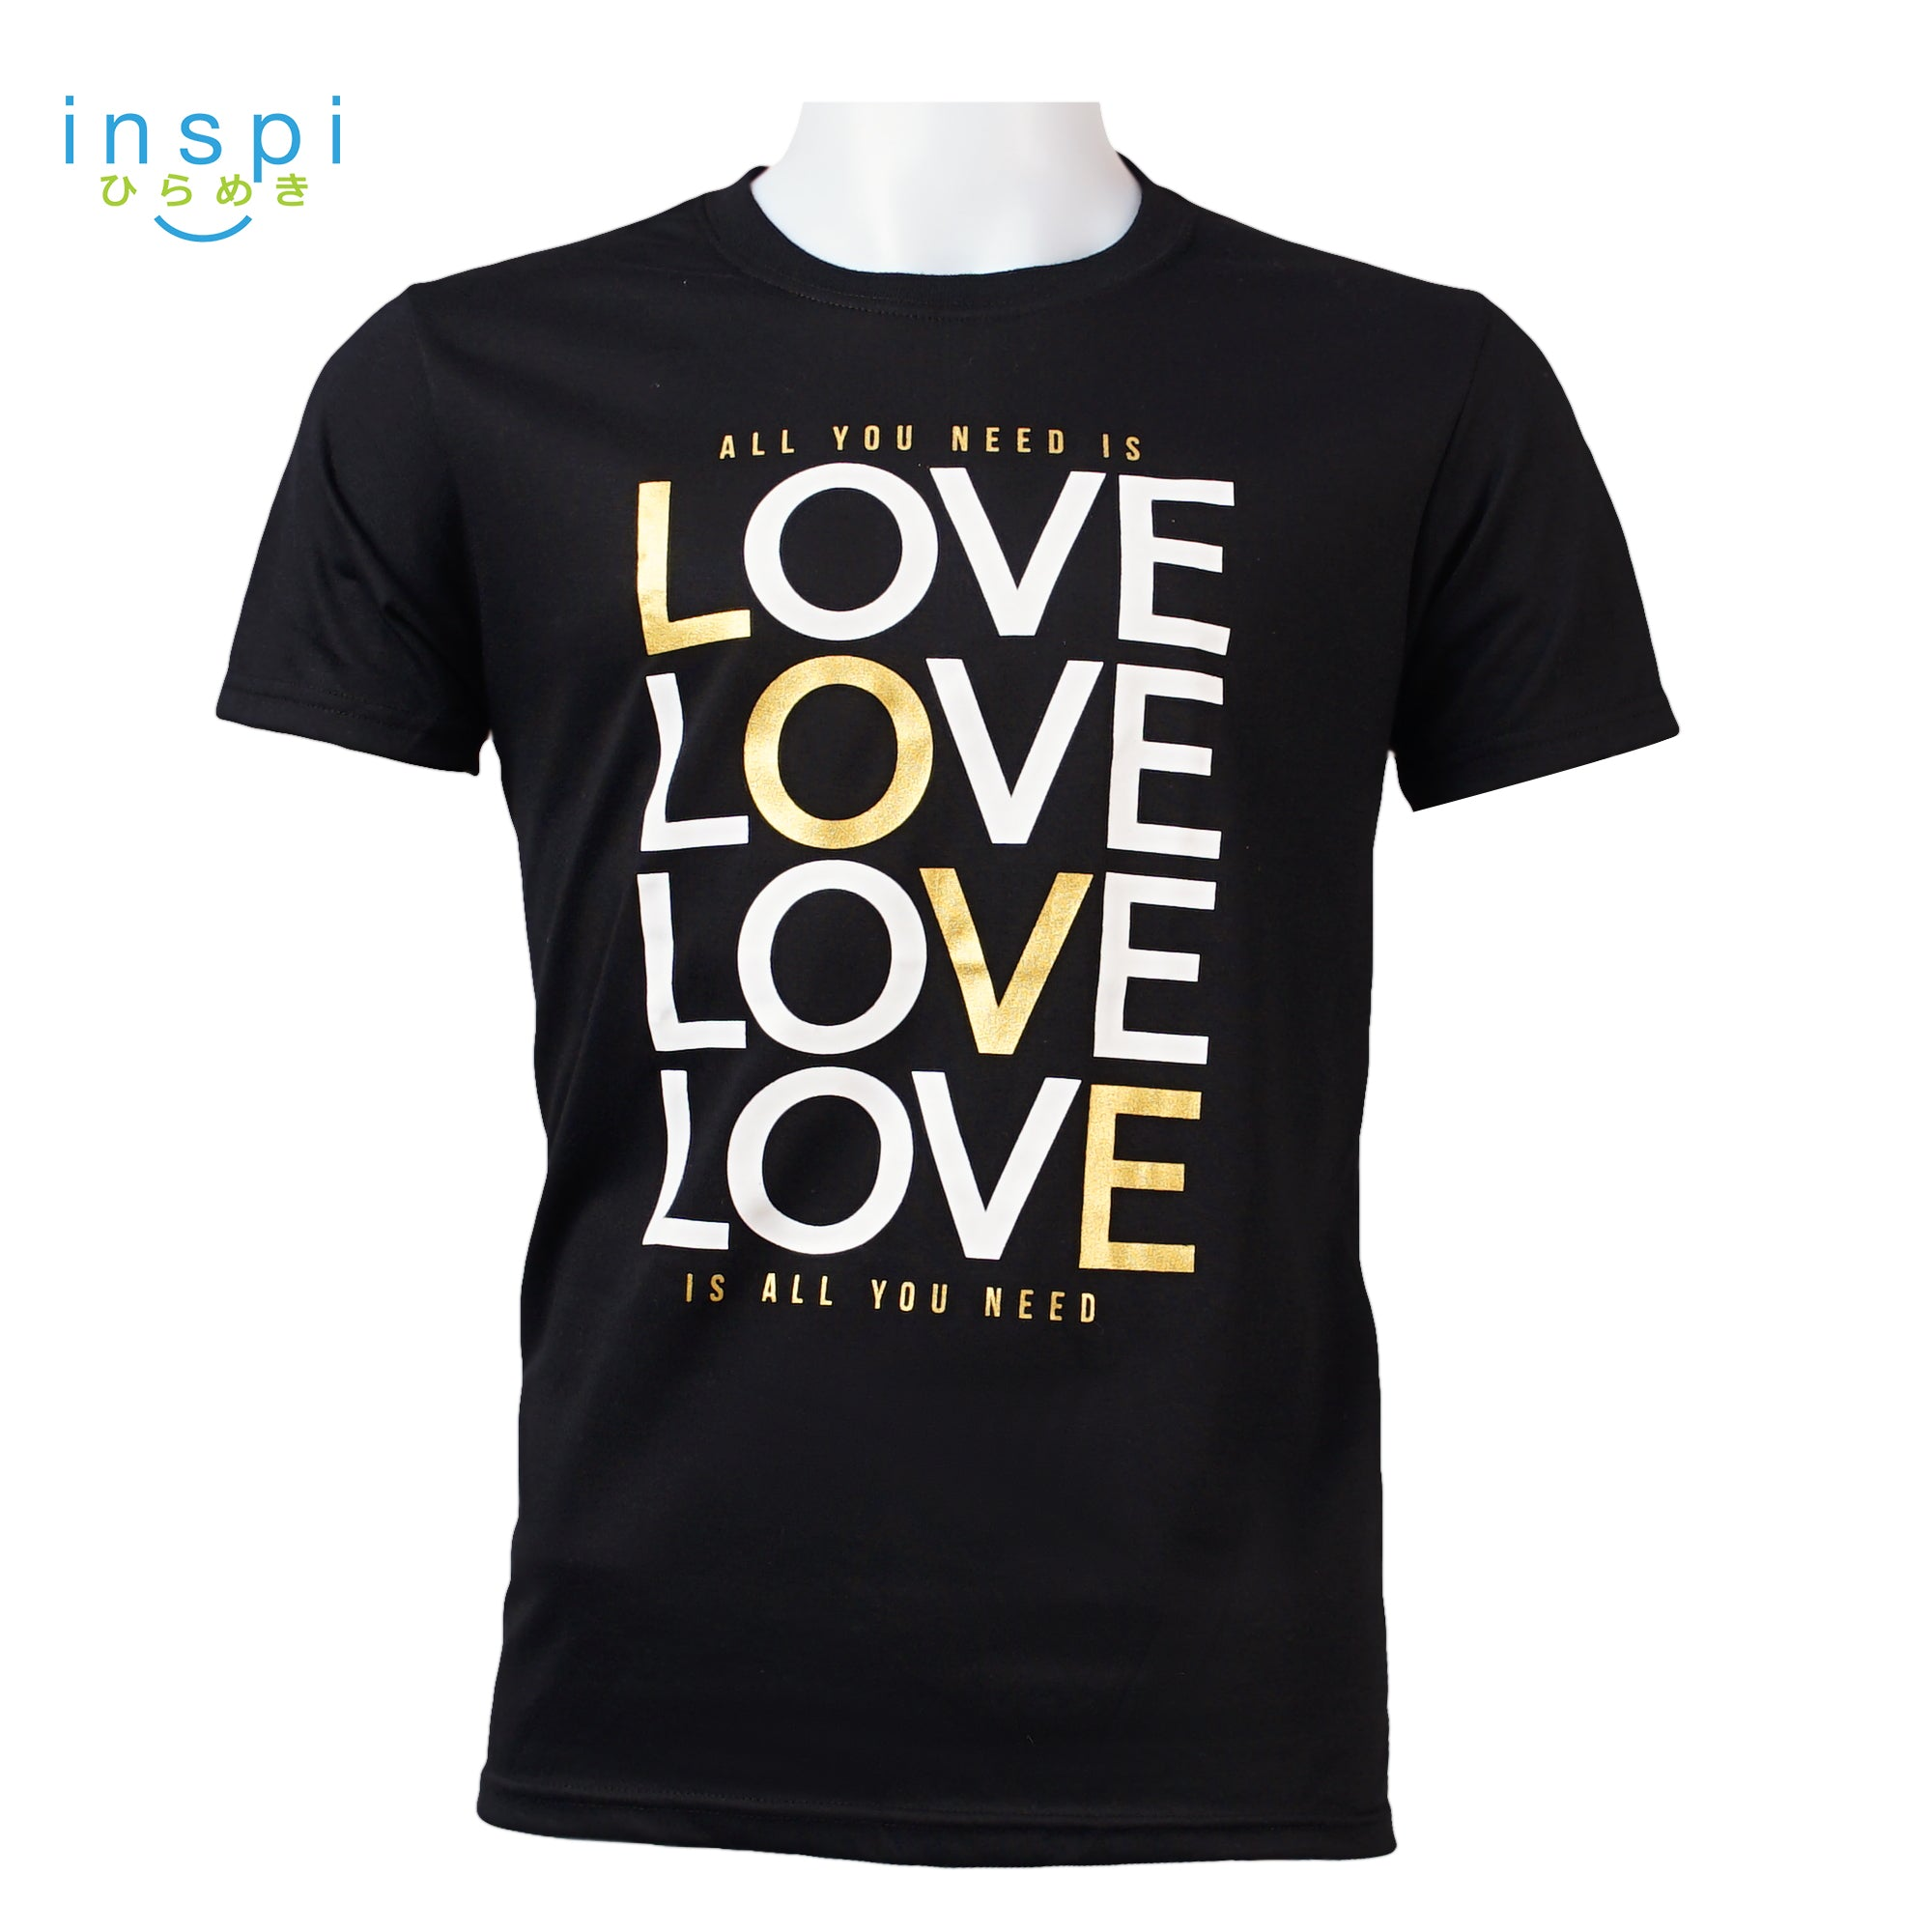 INSPI Tees All You Need is Love Graphic Tshirt in Black